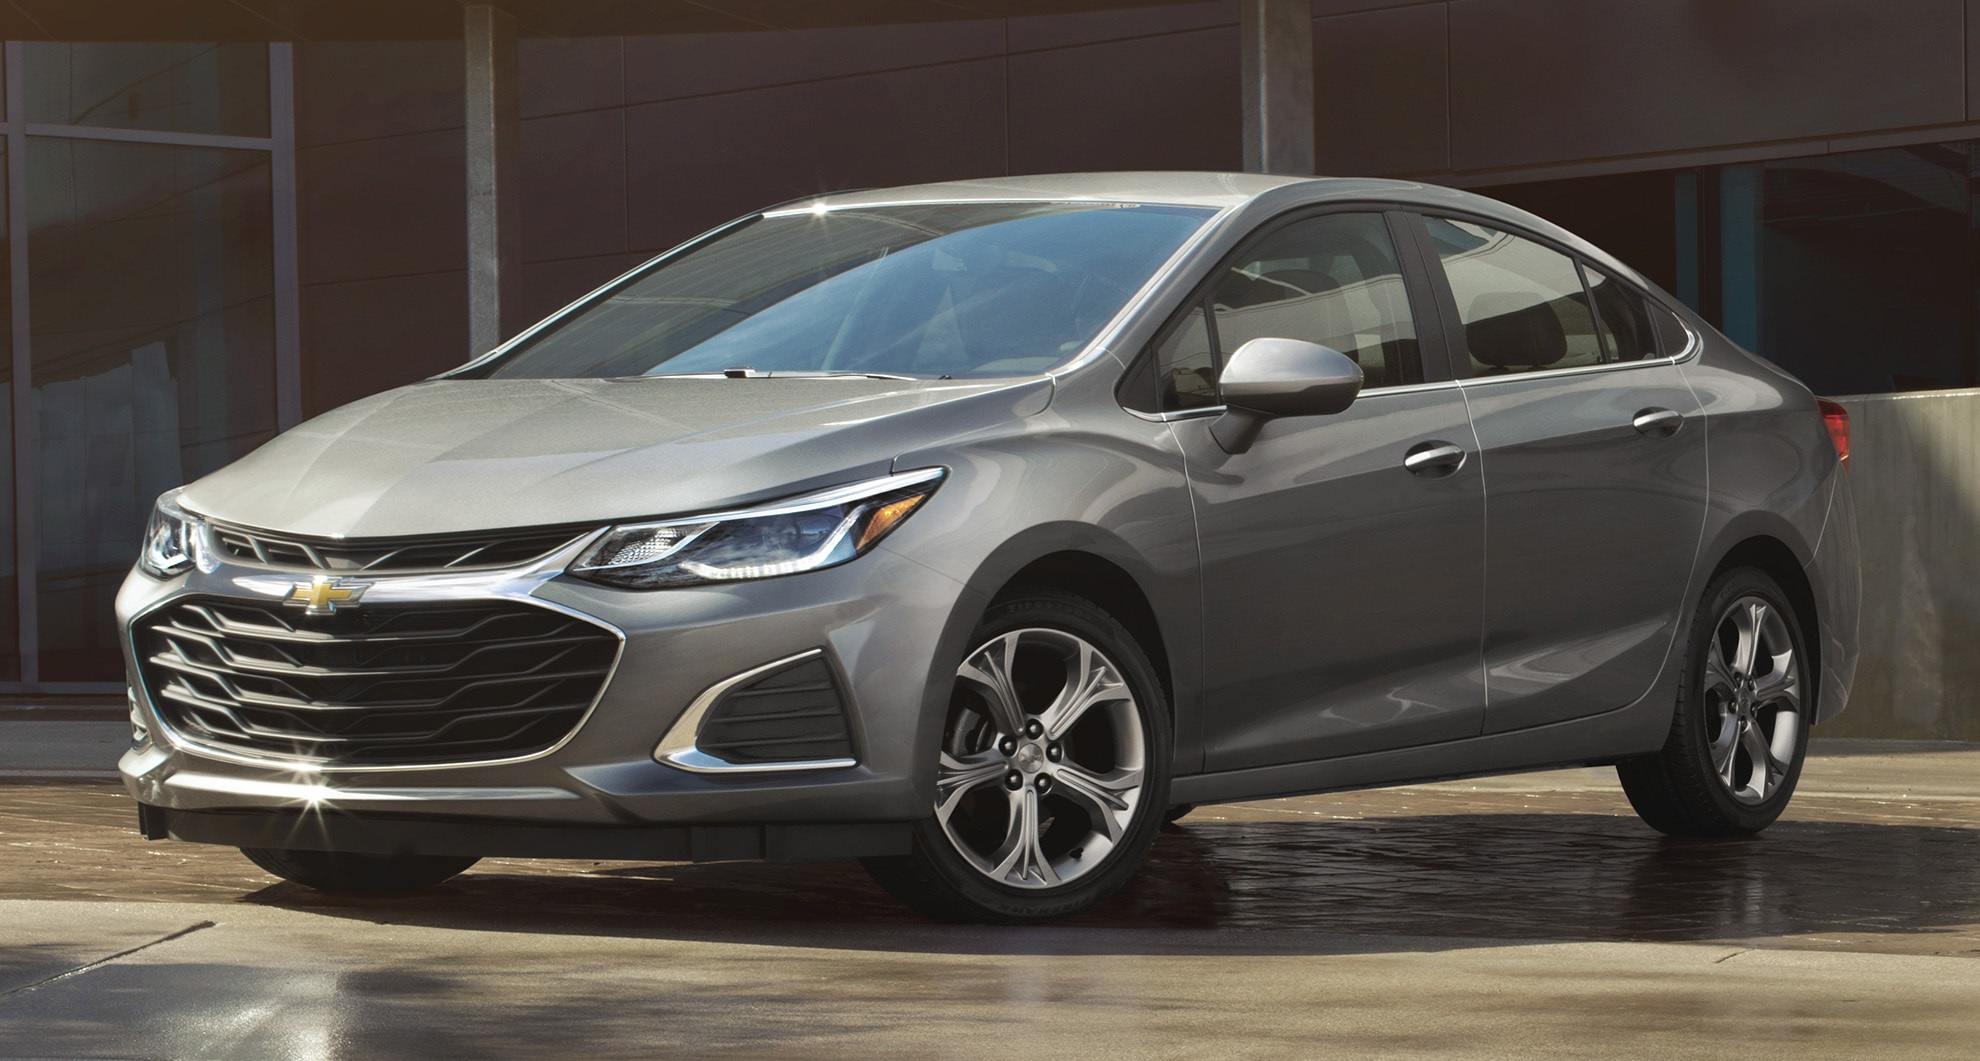 2019 Chevrolet Cruze Facelift Sedan and Hatch Unveiled